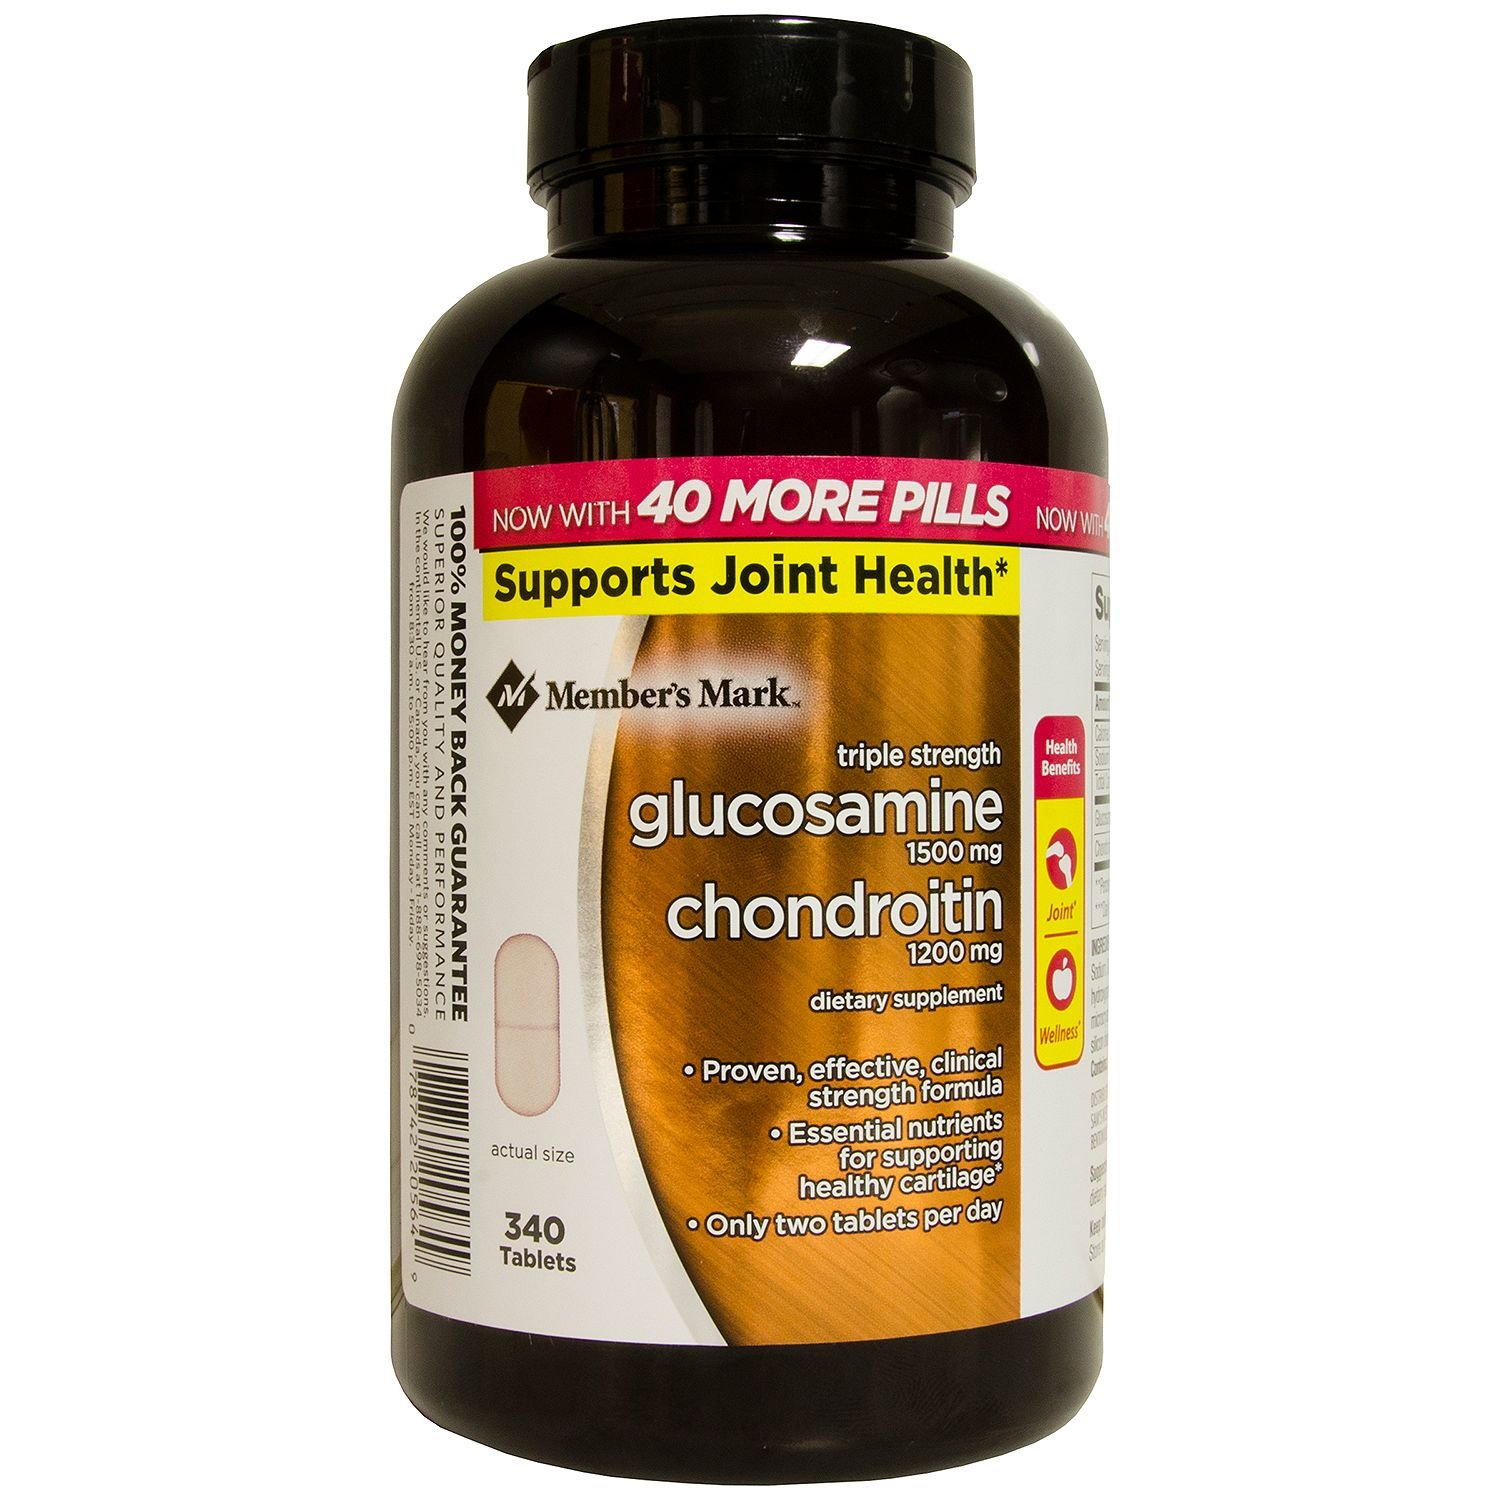 Members Mark - Glucosamine Chondroitin, Triple Strength, 300 Tablets